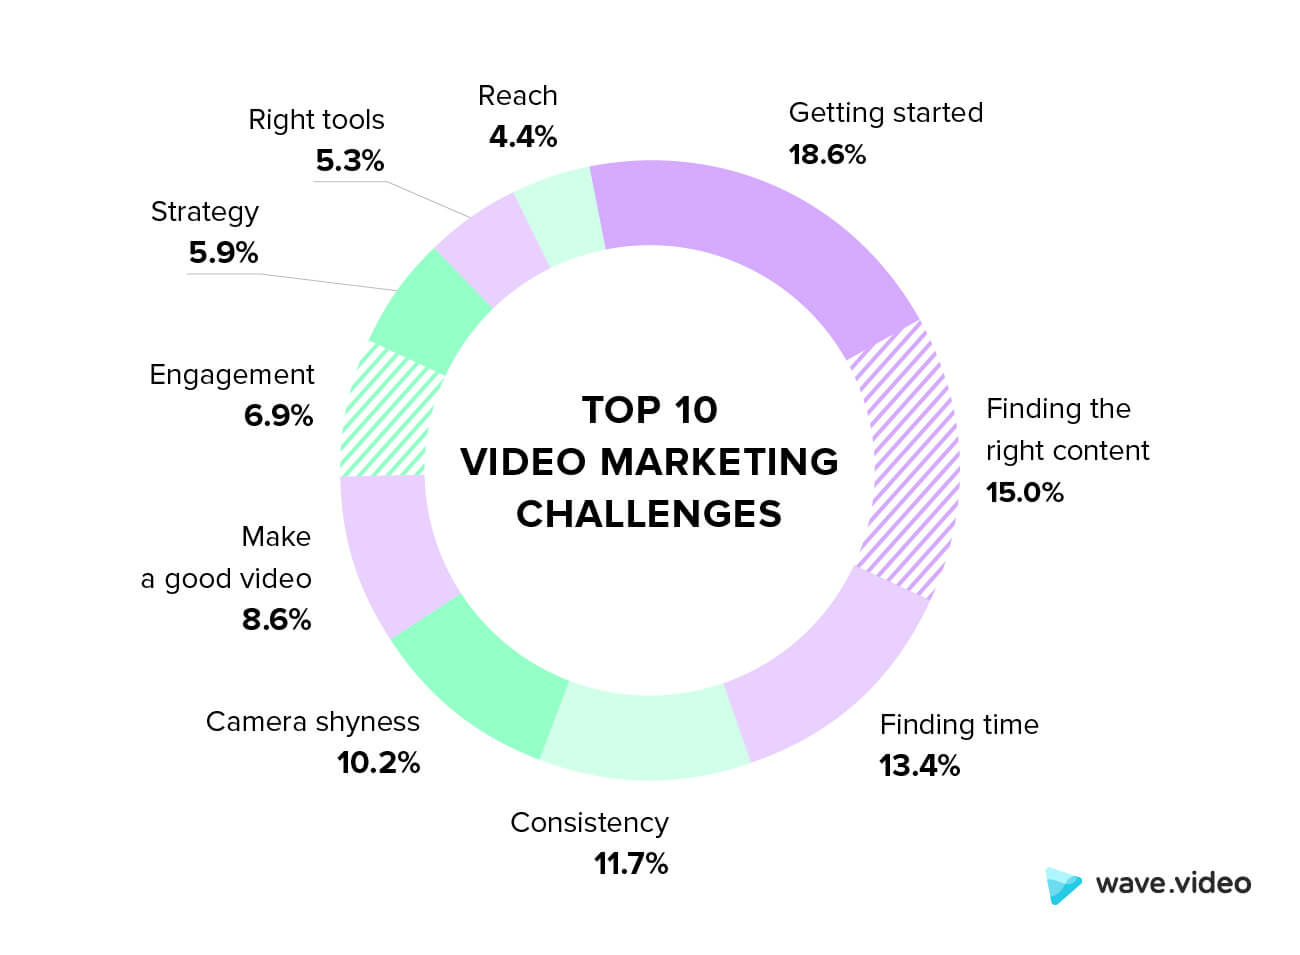 Top video marketing challenges